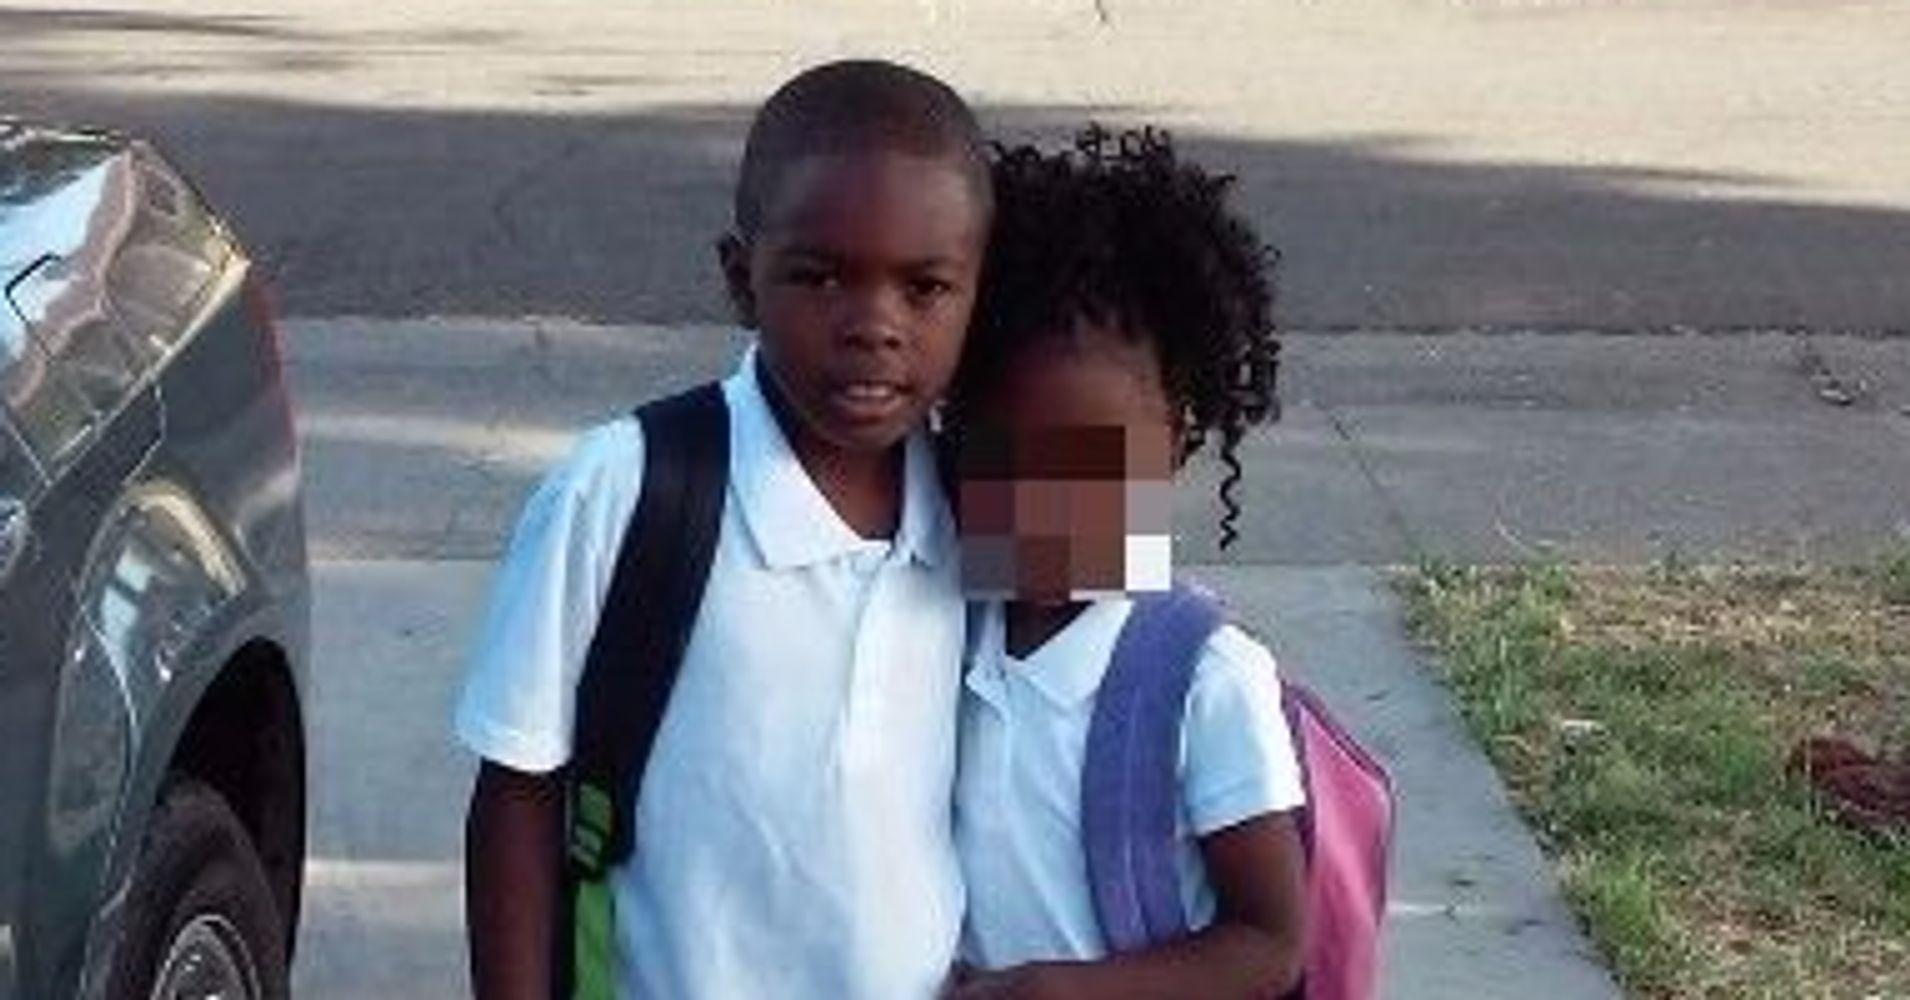 8-Year-Old Boy Killed While Trying To Protect Sister From Sexual Assault:  Family | HuffPost